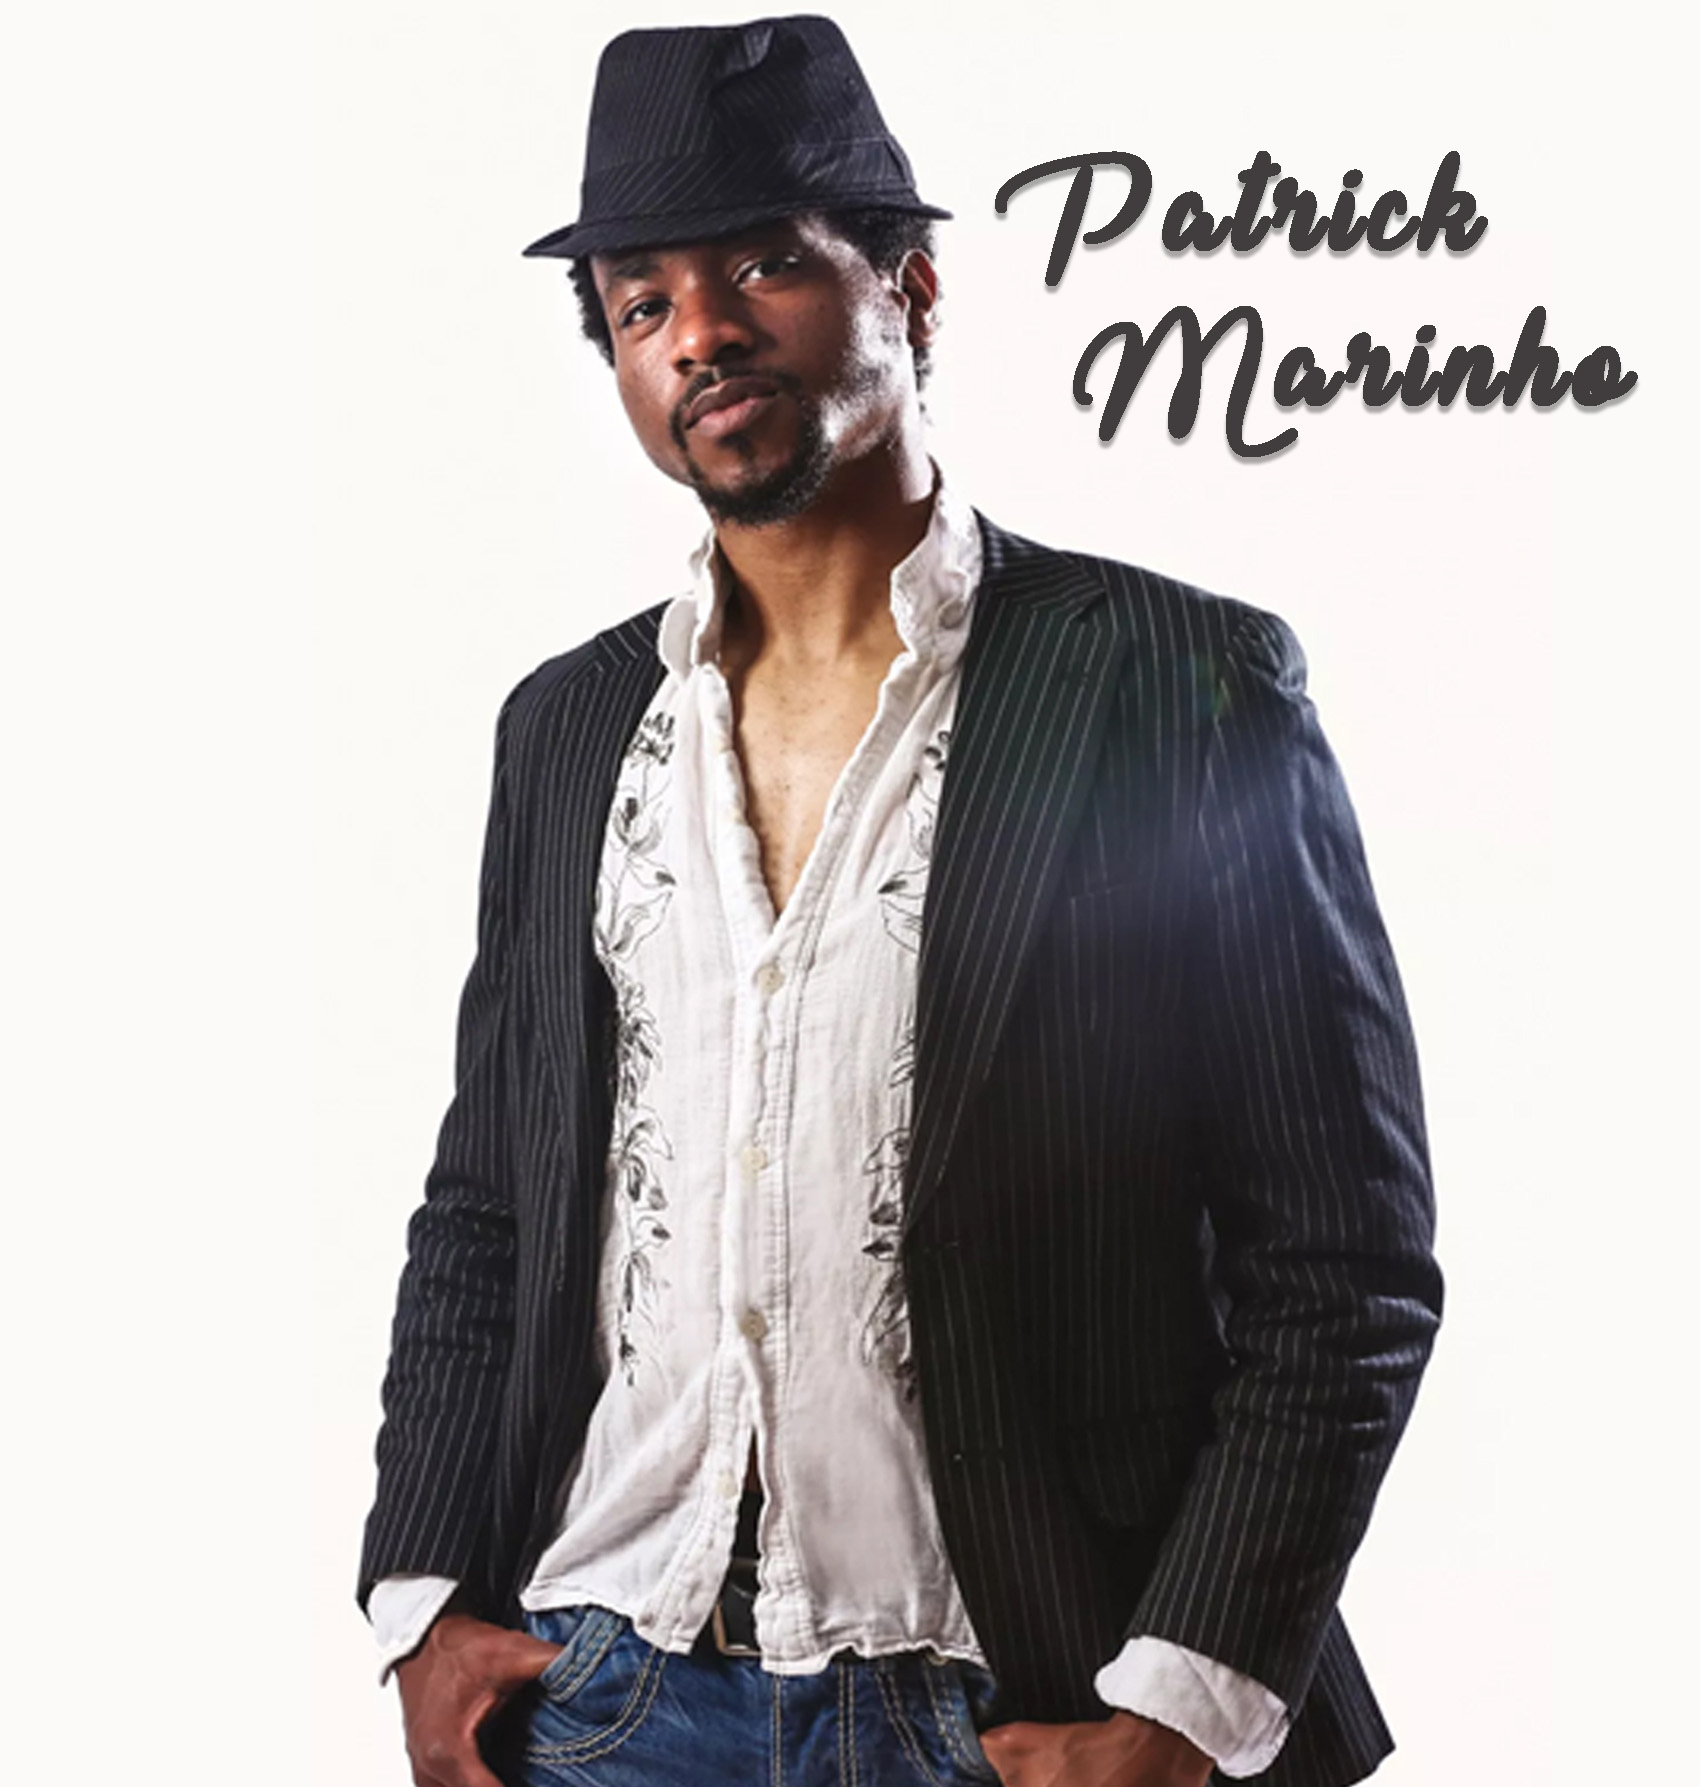 UK  Patrick is an exciting dancer, teacher and choreographer with many years of experience, having learned from some of the worlds best and has taught and performed in various European cities including Ireland, Switzerland, Sweden, France, Germany, Bulgaria and the U.K.  His experience with and exposure to a variety of dance styles, including but not limited to salsa On1 and On2, cha cha, bachata, ballet, jazz and Afro-Latin funk, and a martial arts background has prompted a life-long exploration of movement and physical expression evident in his being.  Where to find me?   www.iknowaguyent.com